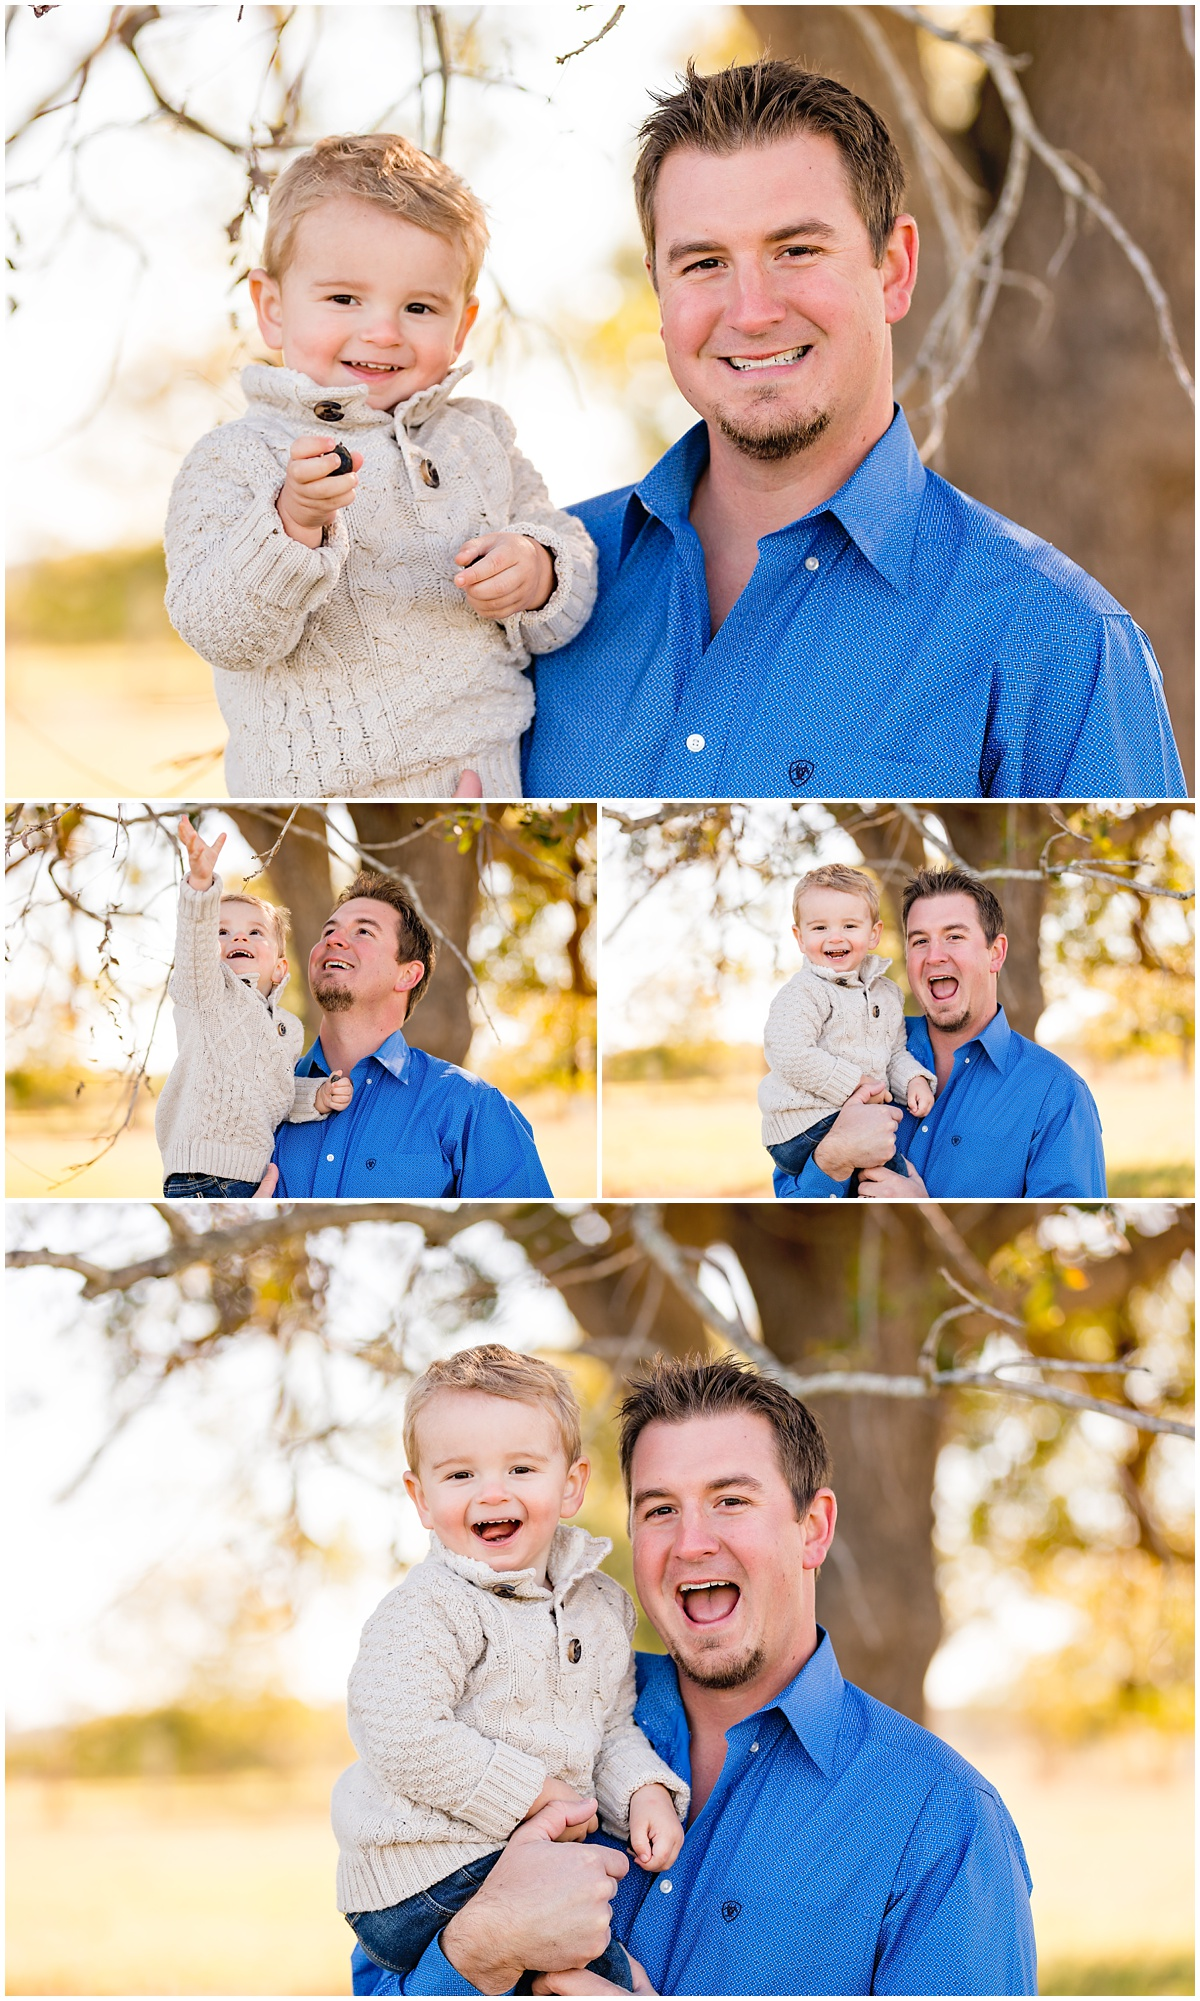 Family-Children-Maternity-Portraits-San-Antonio-Hill-Country-Texas-Carly-Barton-Photography_0061.jpg